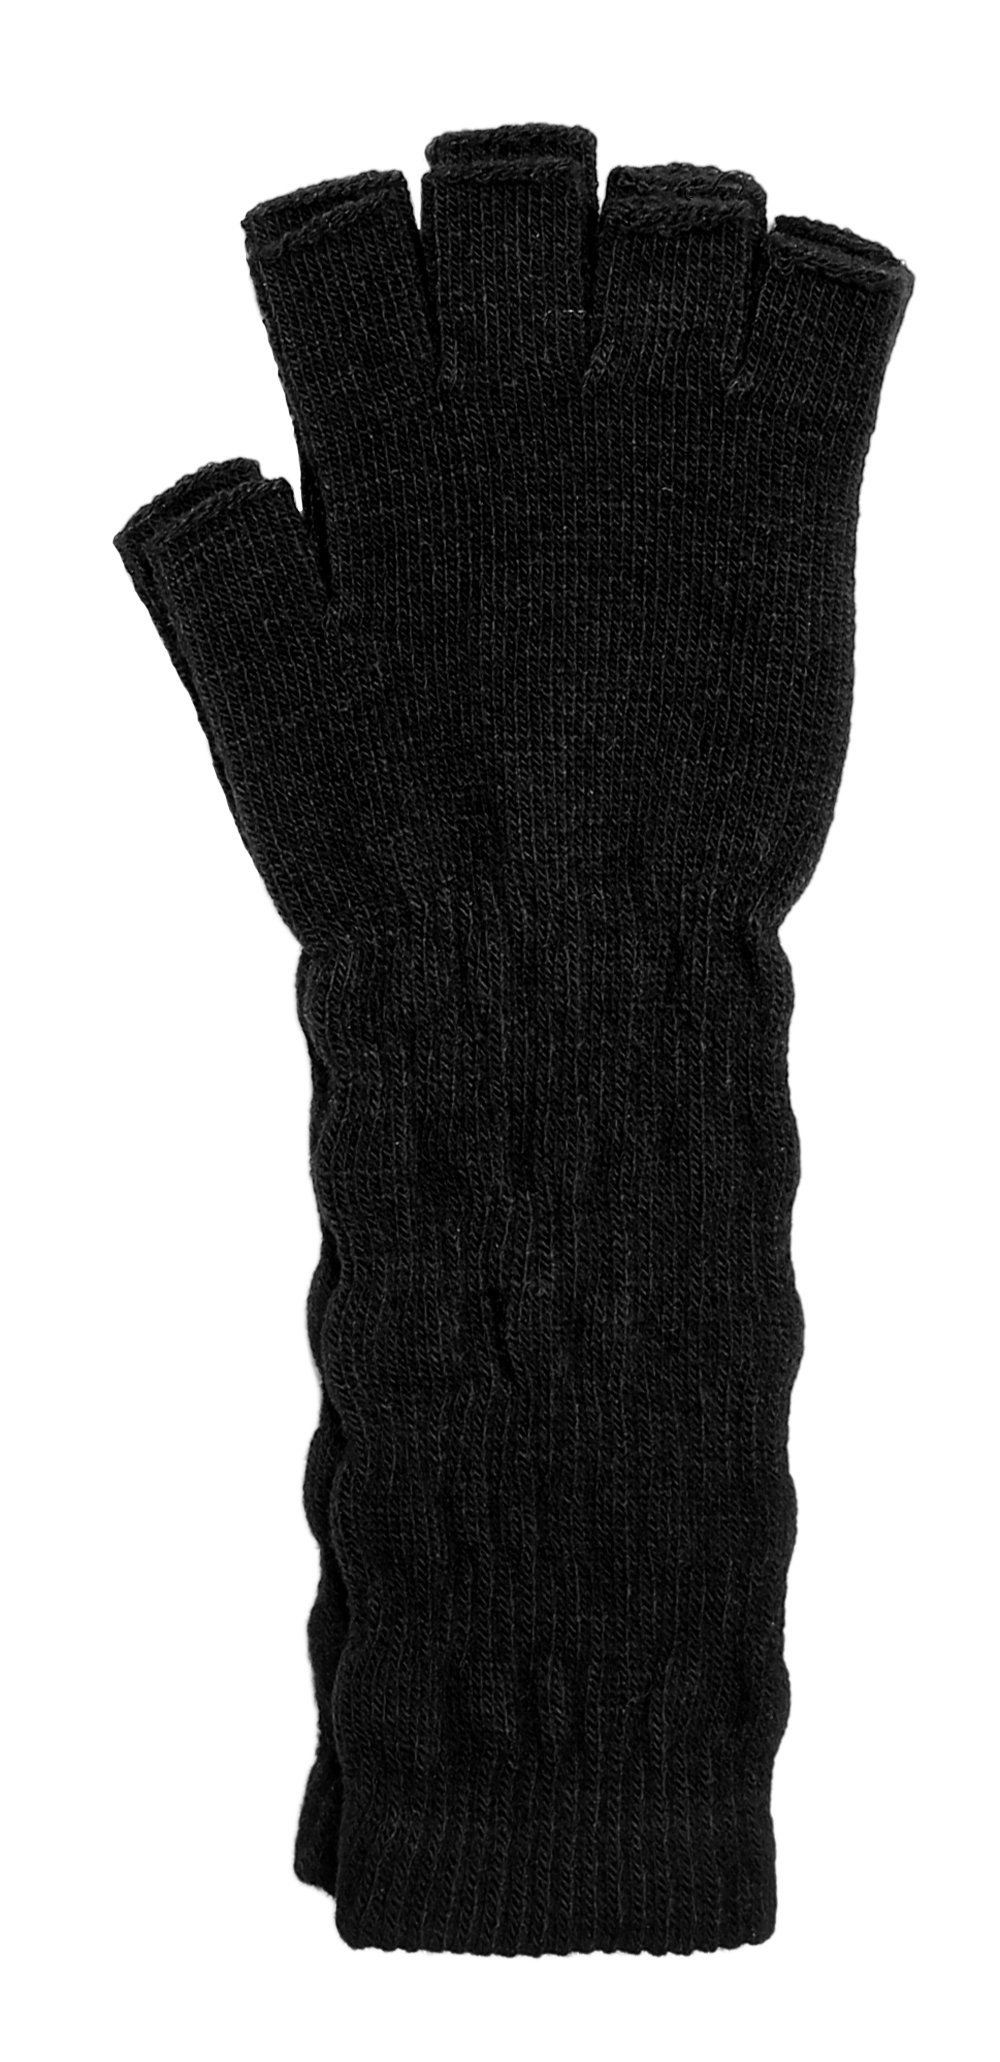 LL- Womens Warm Winter Arm Warmer Knit Fingerless Long Gloves 5 Half Fingers (Black Solid)